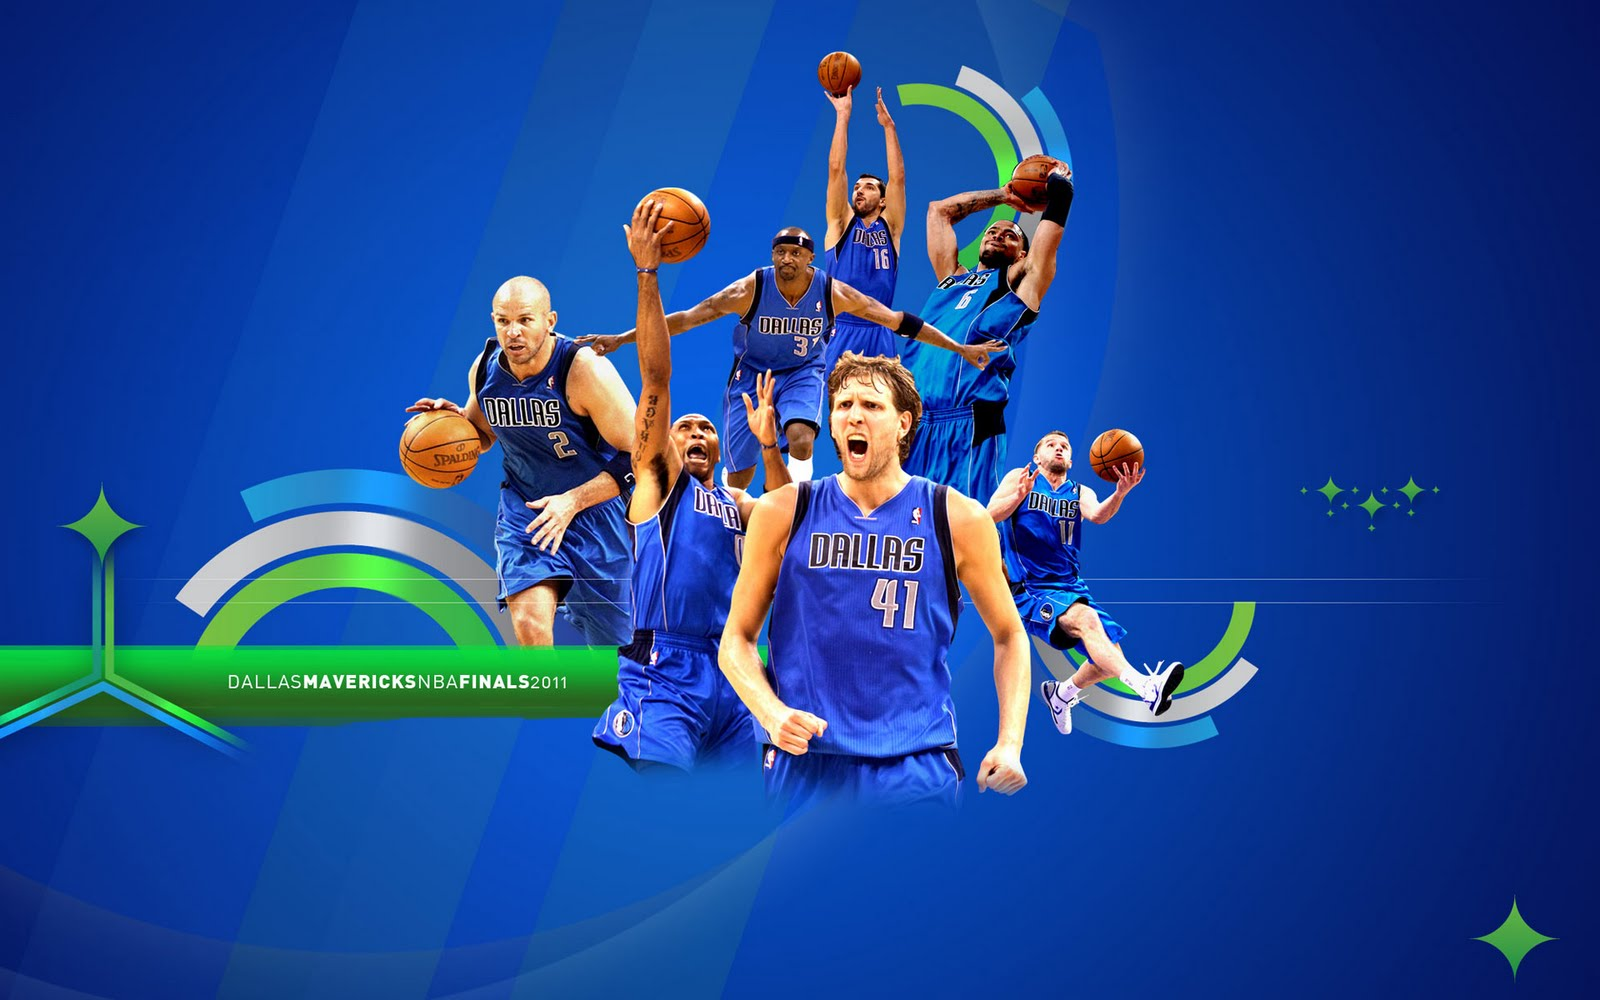 http://1.bp.blogspot.com/-sxU_FbMhJOQ/TeMy6cg2VaI/AAAAAAAAE_s/W1NhdK9lF6Q/s1600/Dallas-Mavericks-2011-NBA-Finals-Widescreen-Wallpaper-BasketWallpapers.com-.jpg